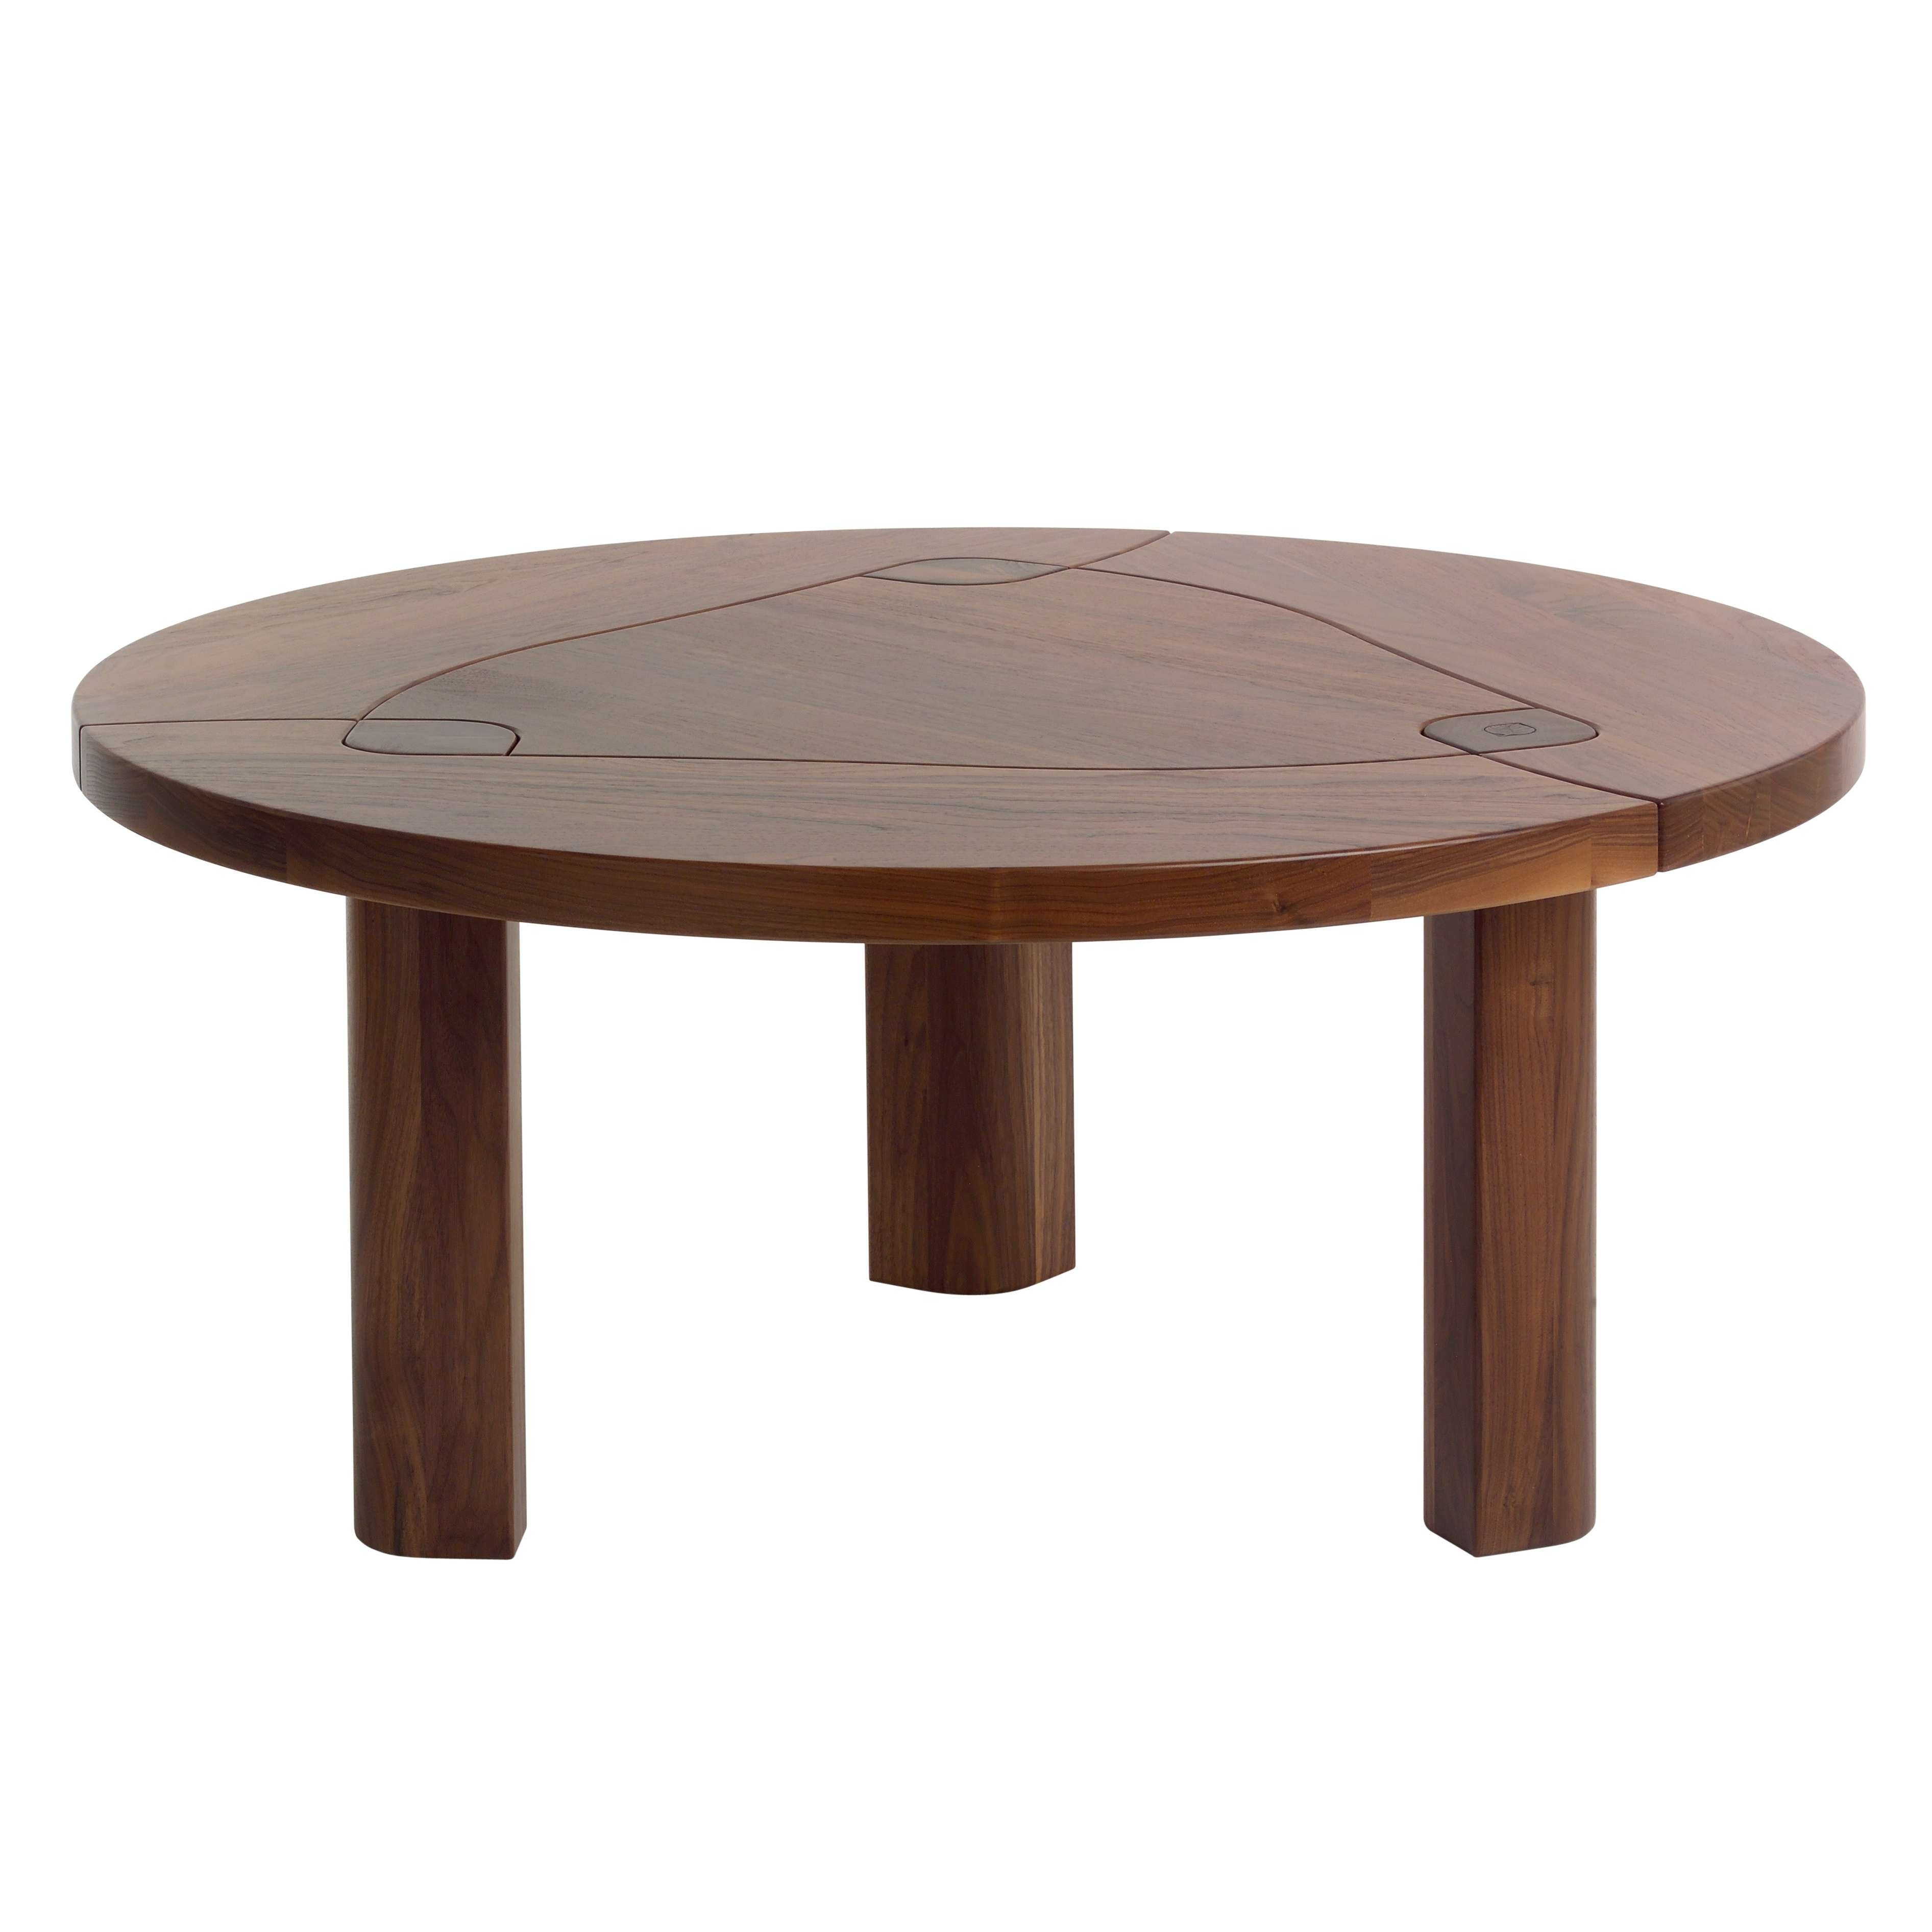 Latest Small Wood Coffee Tables For Great Small Wood Coffee Table 73 For Your Interior Decor Home With (View 10 of 20)